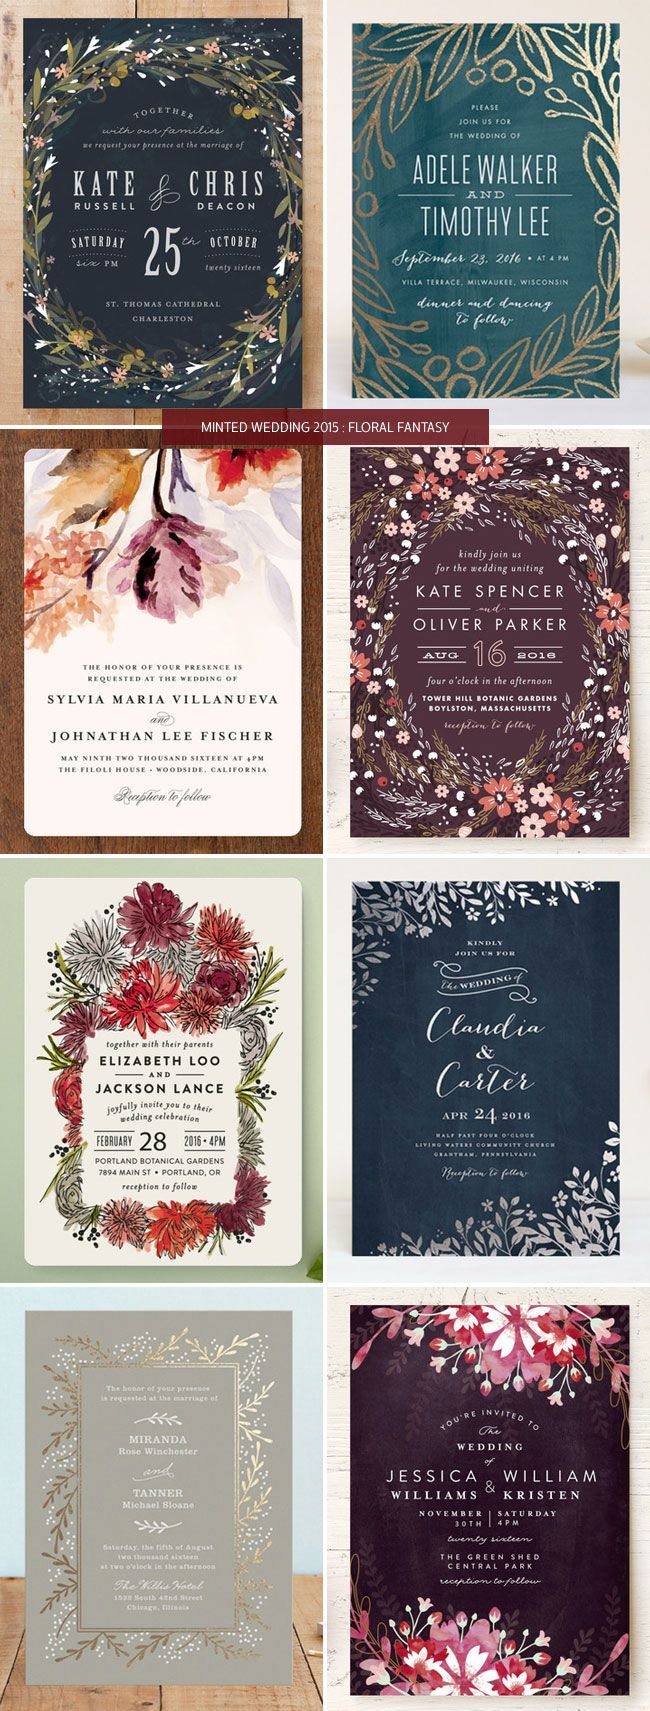 Minted Wedding Invitations 2015 : Floral Fantasy: